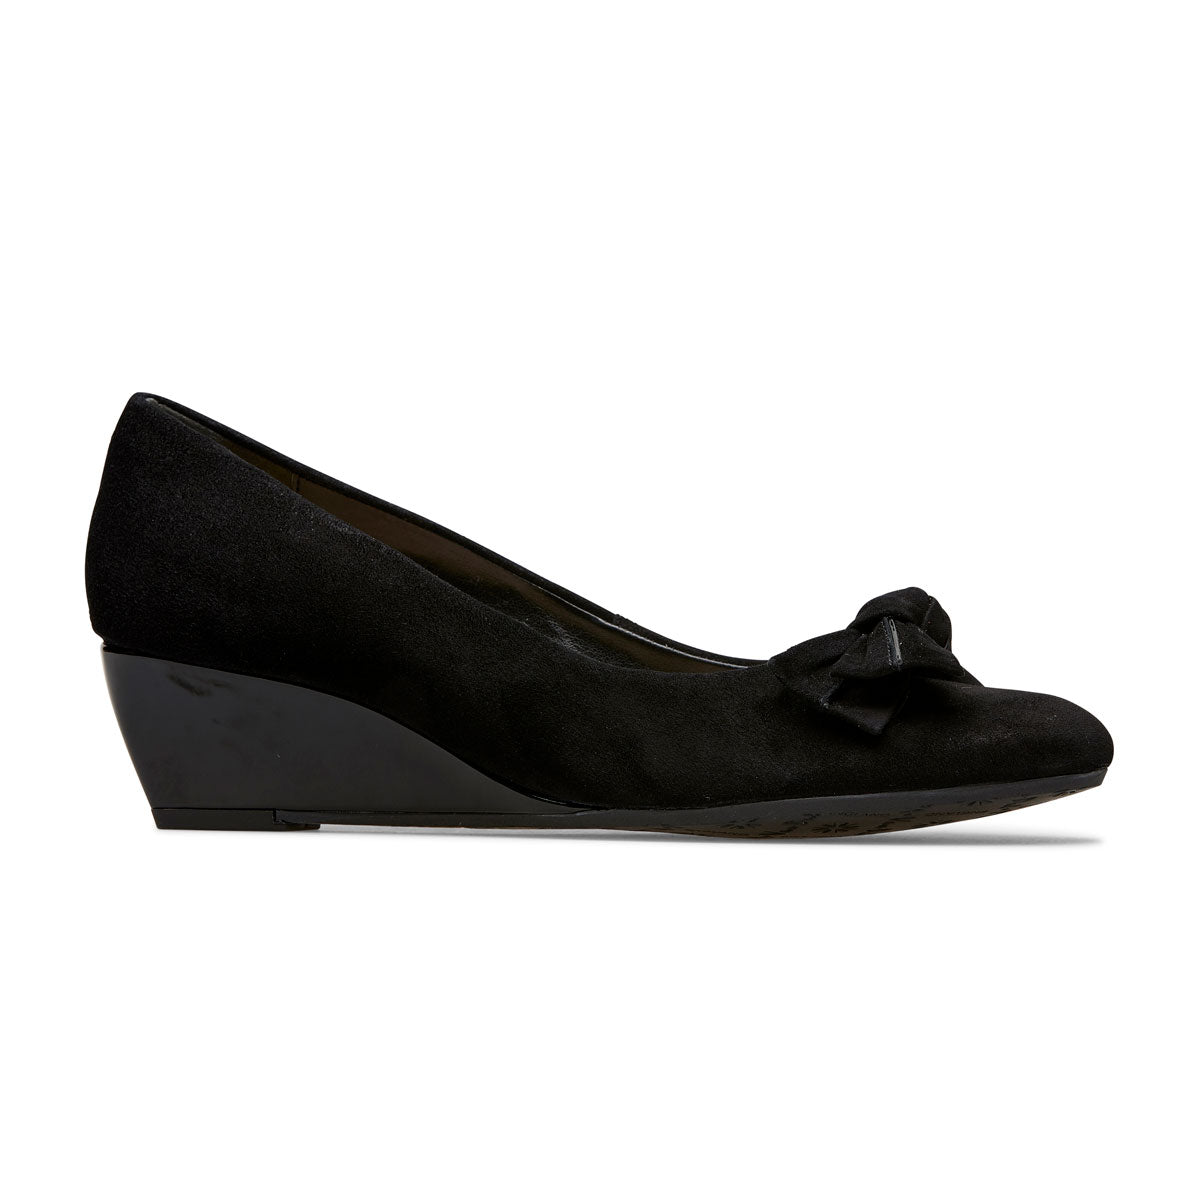 Bourne Mid Wedge Heel Court Shoe With Bow Detail